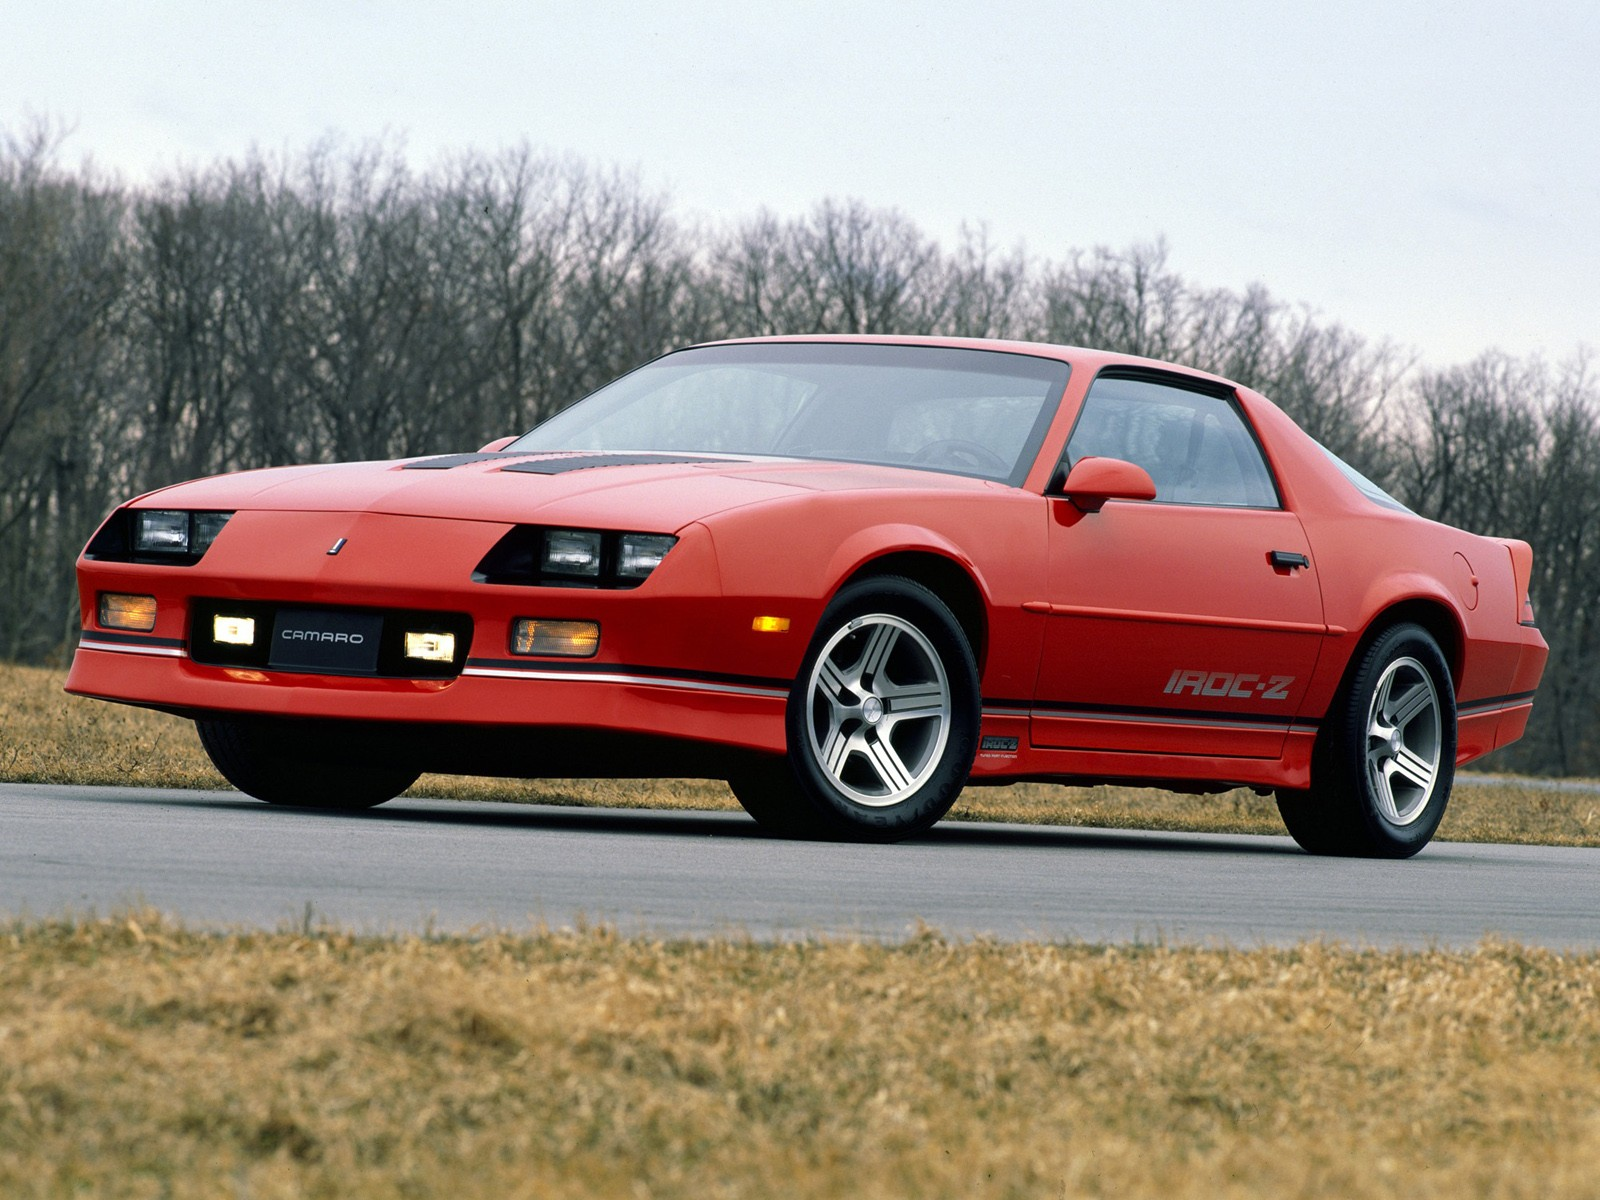 chevrolet camaro iroc z28 specs 1984 1985 1986 1987. Black Bedroom Furniture Sets. Home Design Ideas